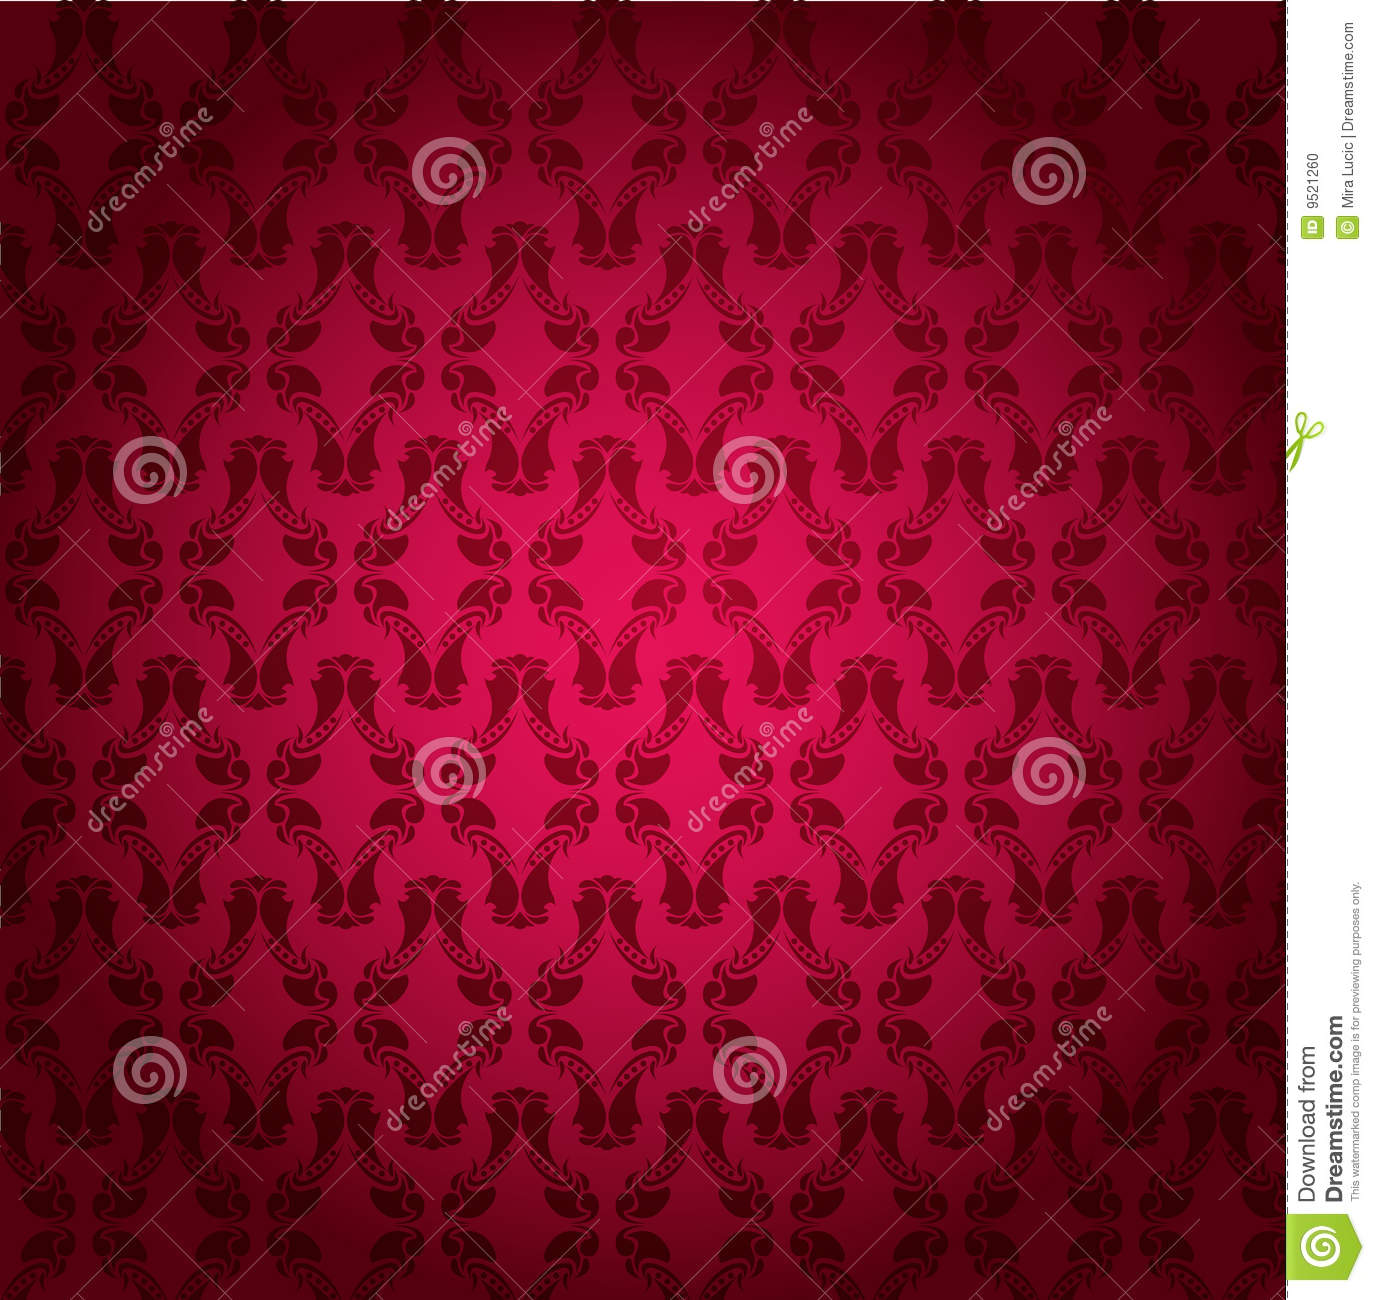 Vector Decorated Wall Stock Photo - Image: 9521260